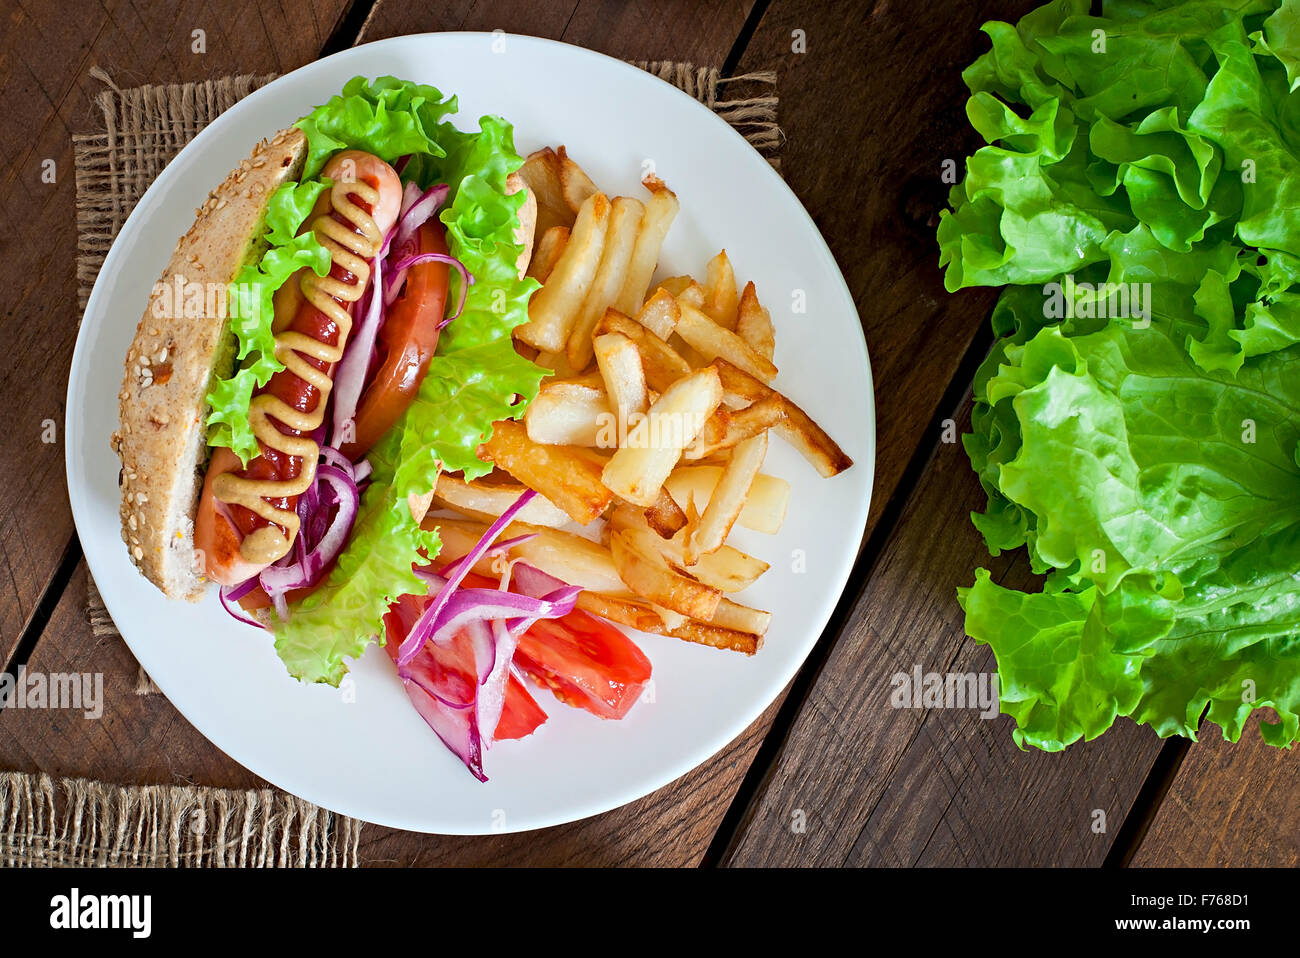 Hot Dogs - sandwich with French fries on white plate, close-up. - Stock Image